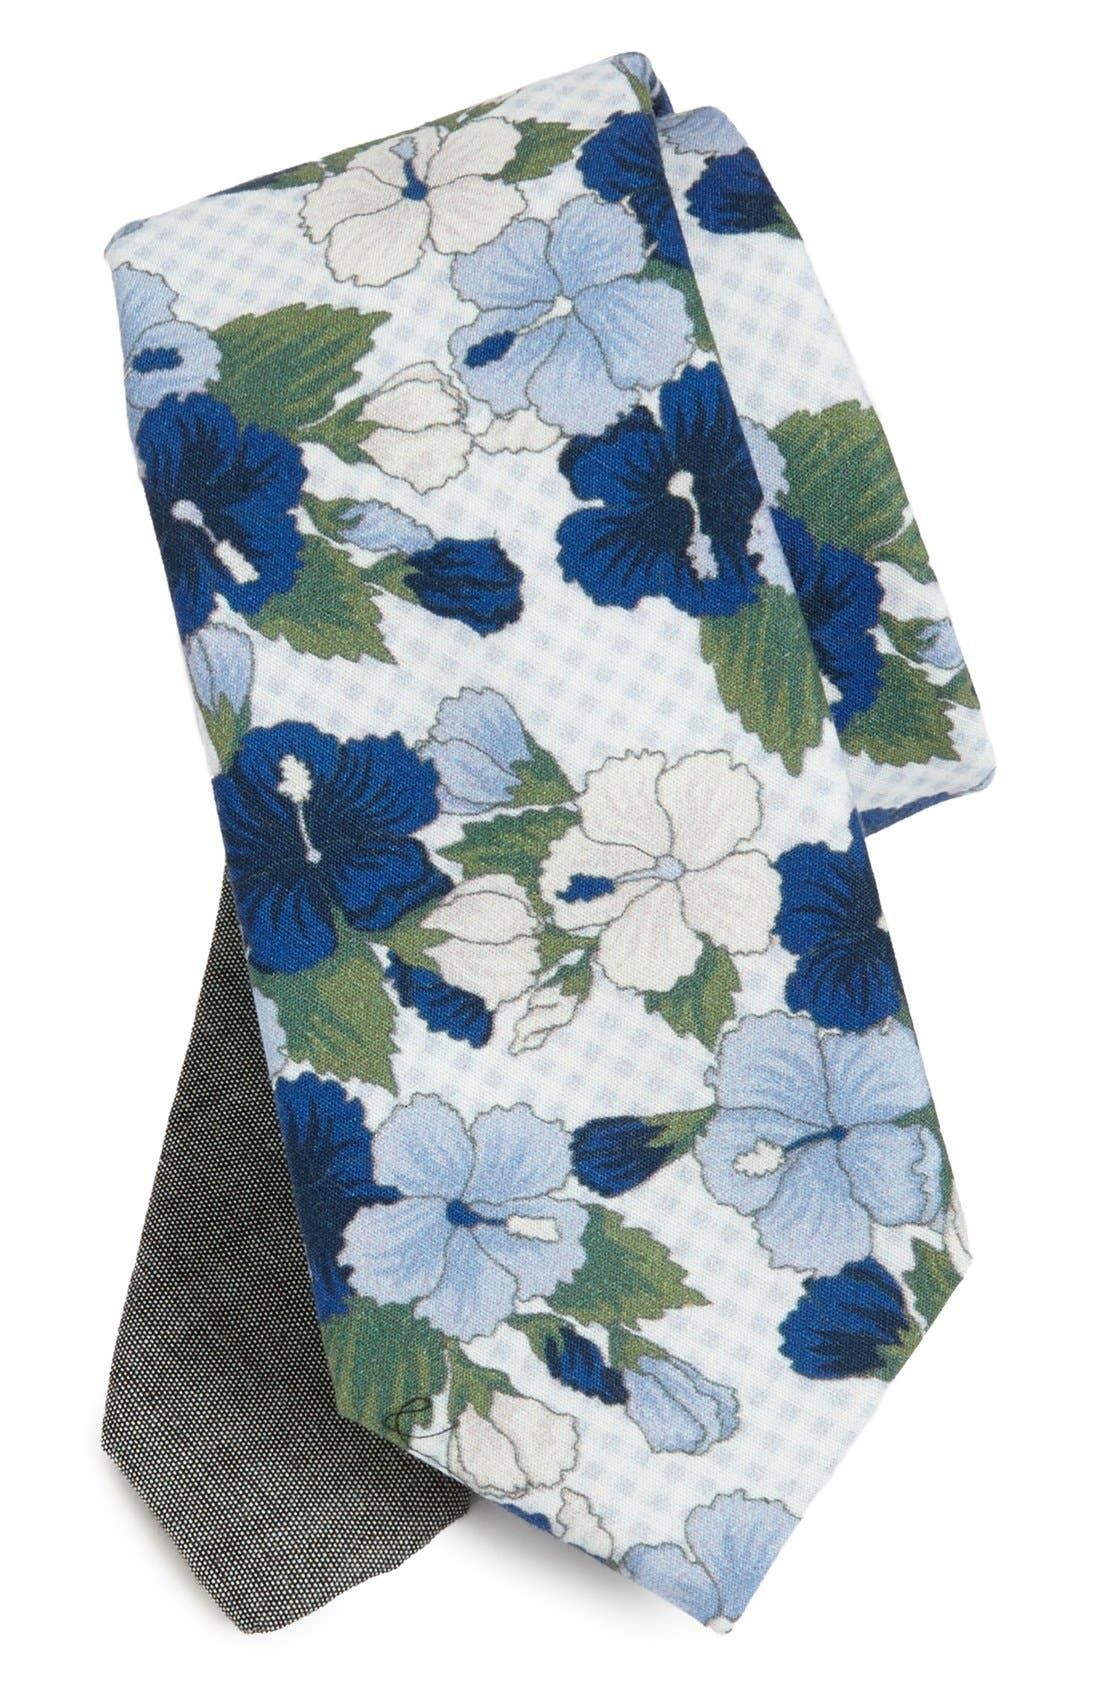 Alternate Image 1 Selected - EDIT by The Tie Bar Floral Cotton Tie (Nordstrom Exclusive)